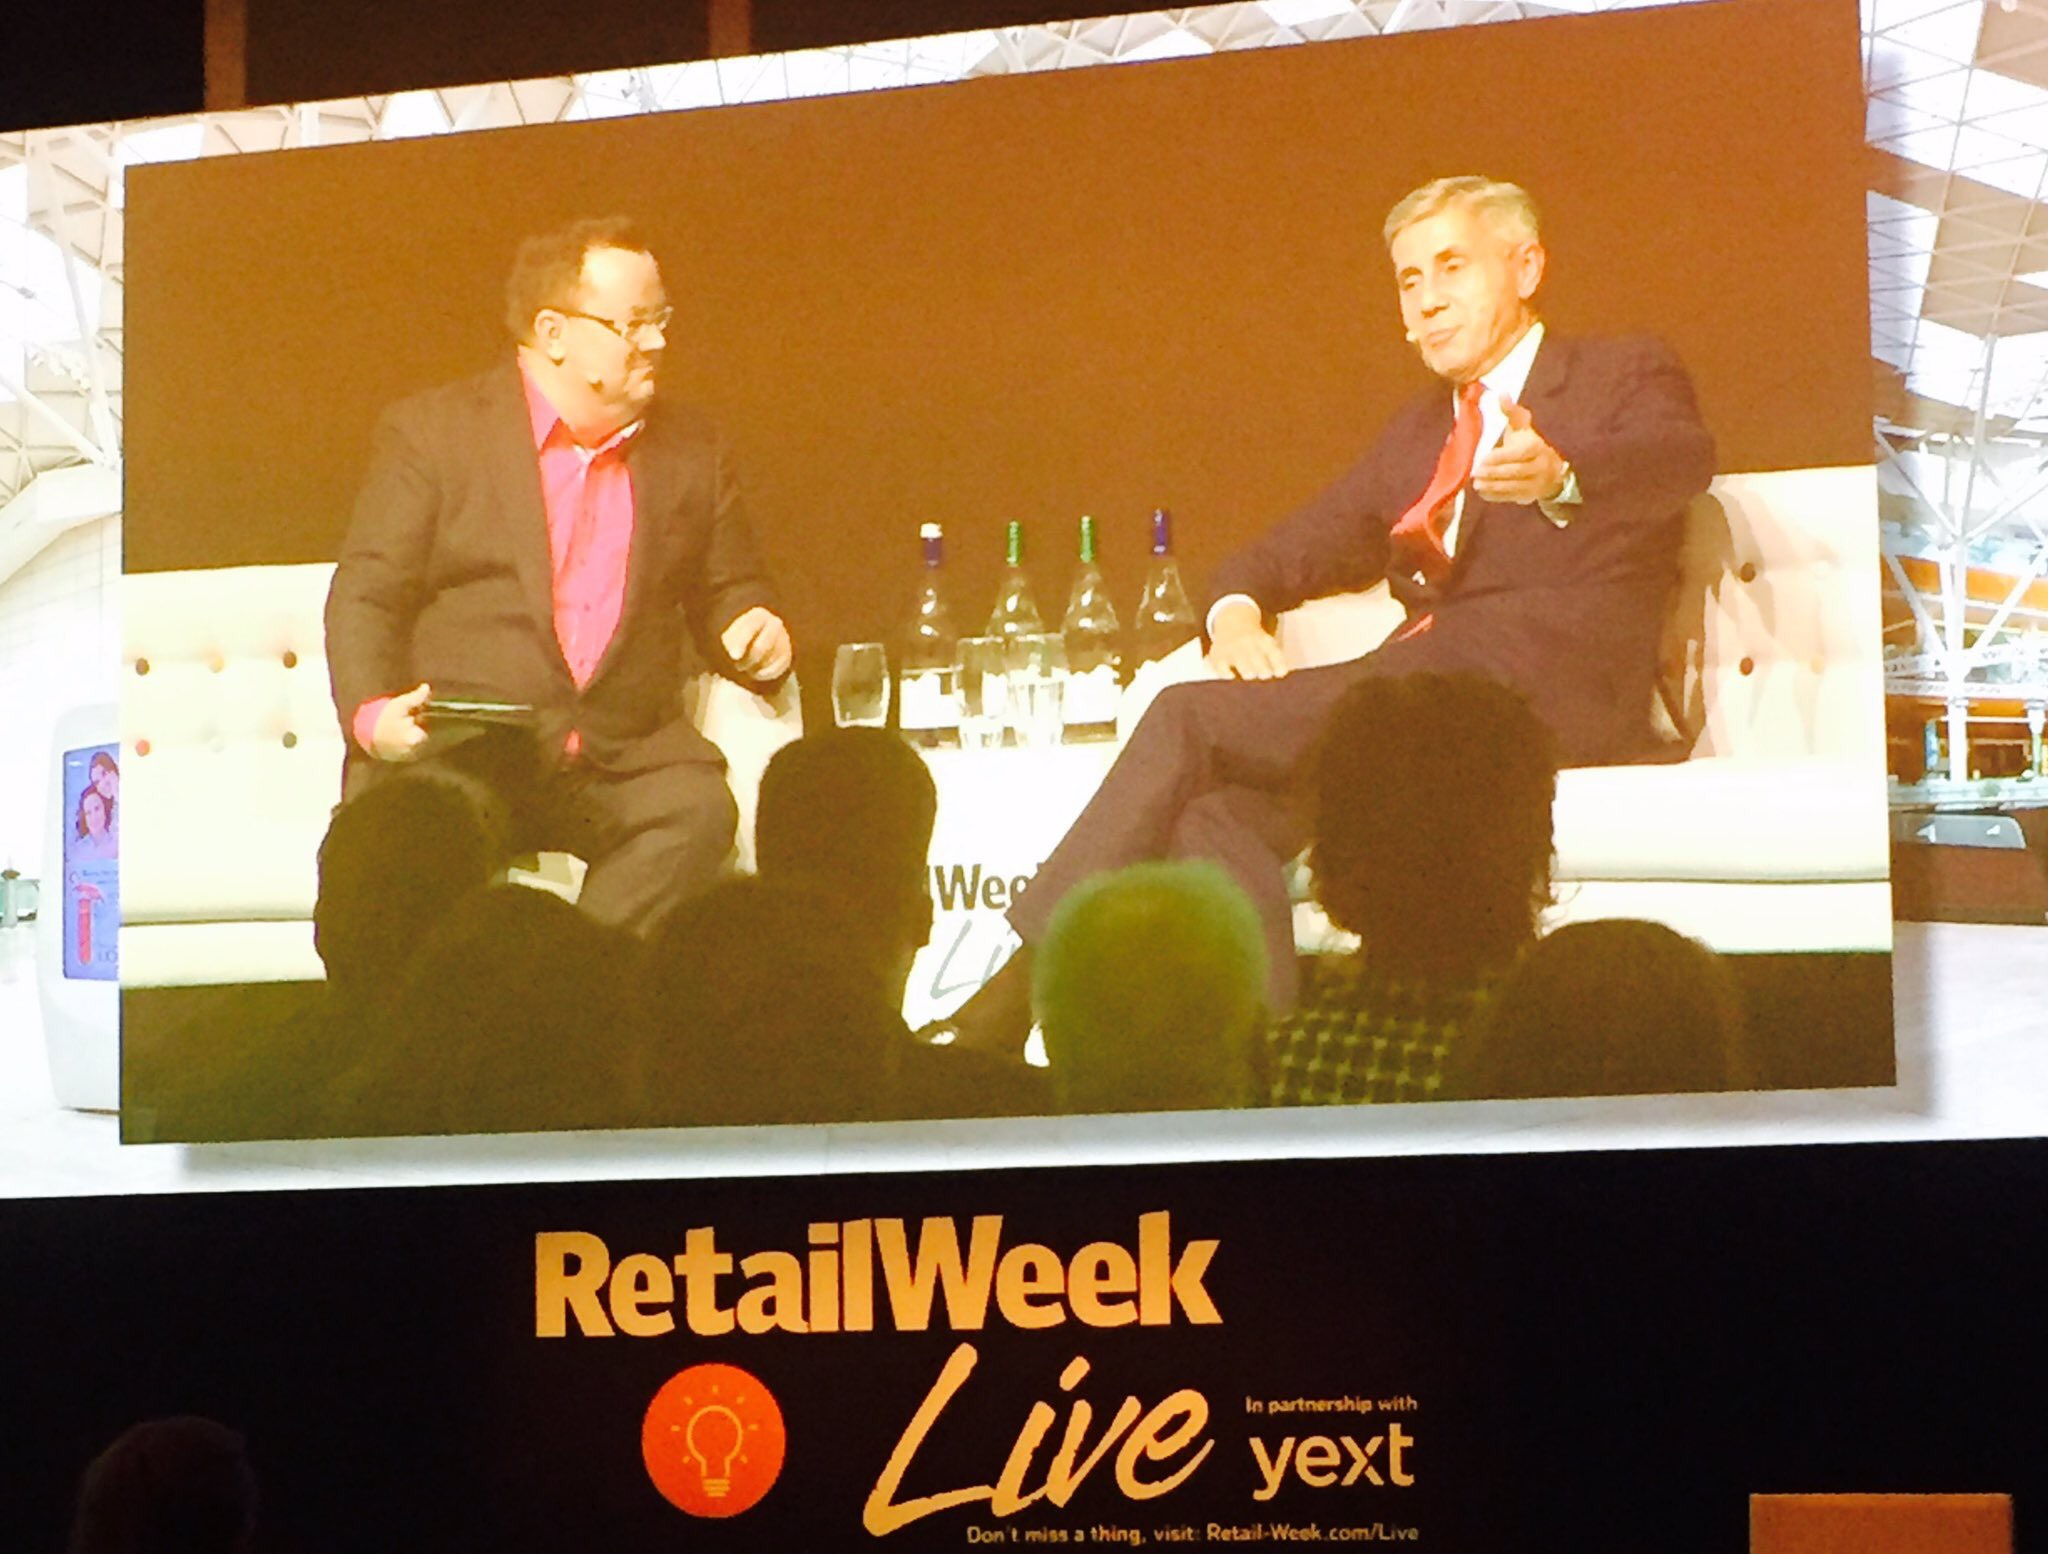 Declan Curry has a half-hour conversation with Lord Rose - former M&S boss Stuart Rose at Retail Week Live 2017.